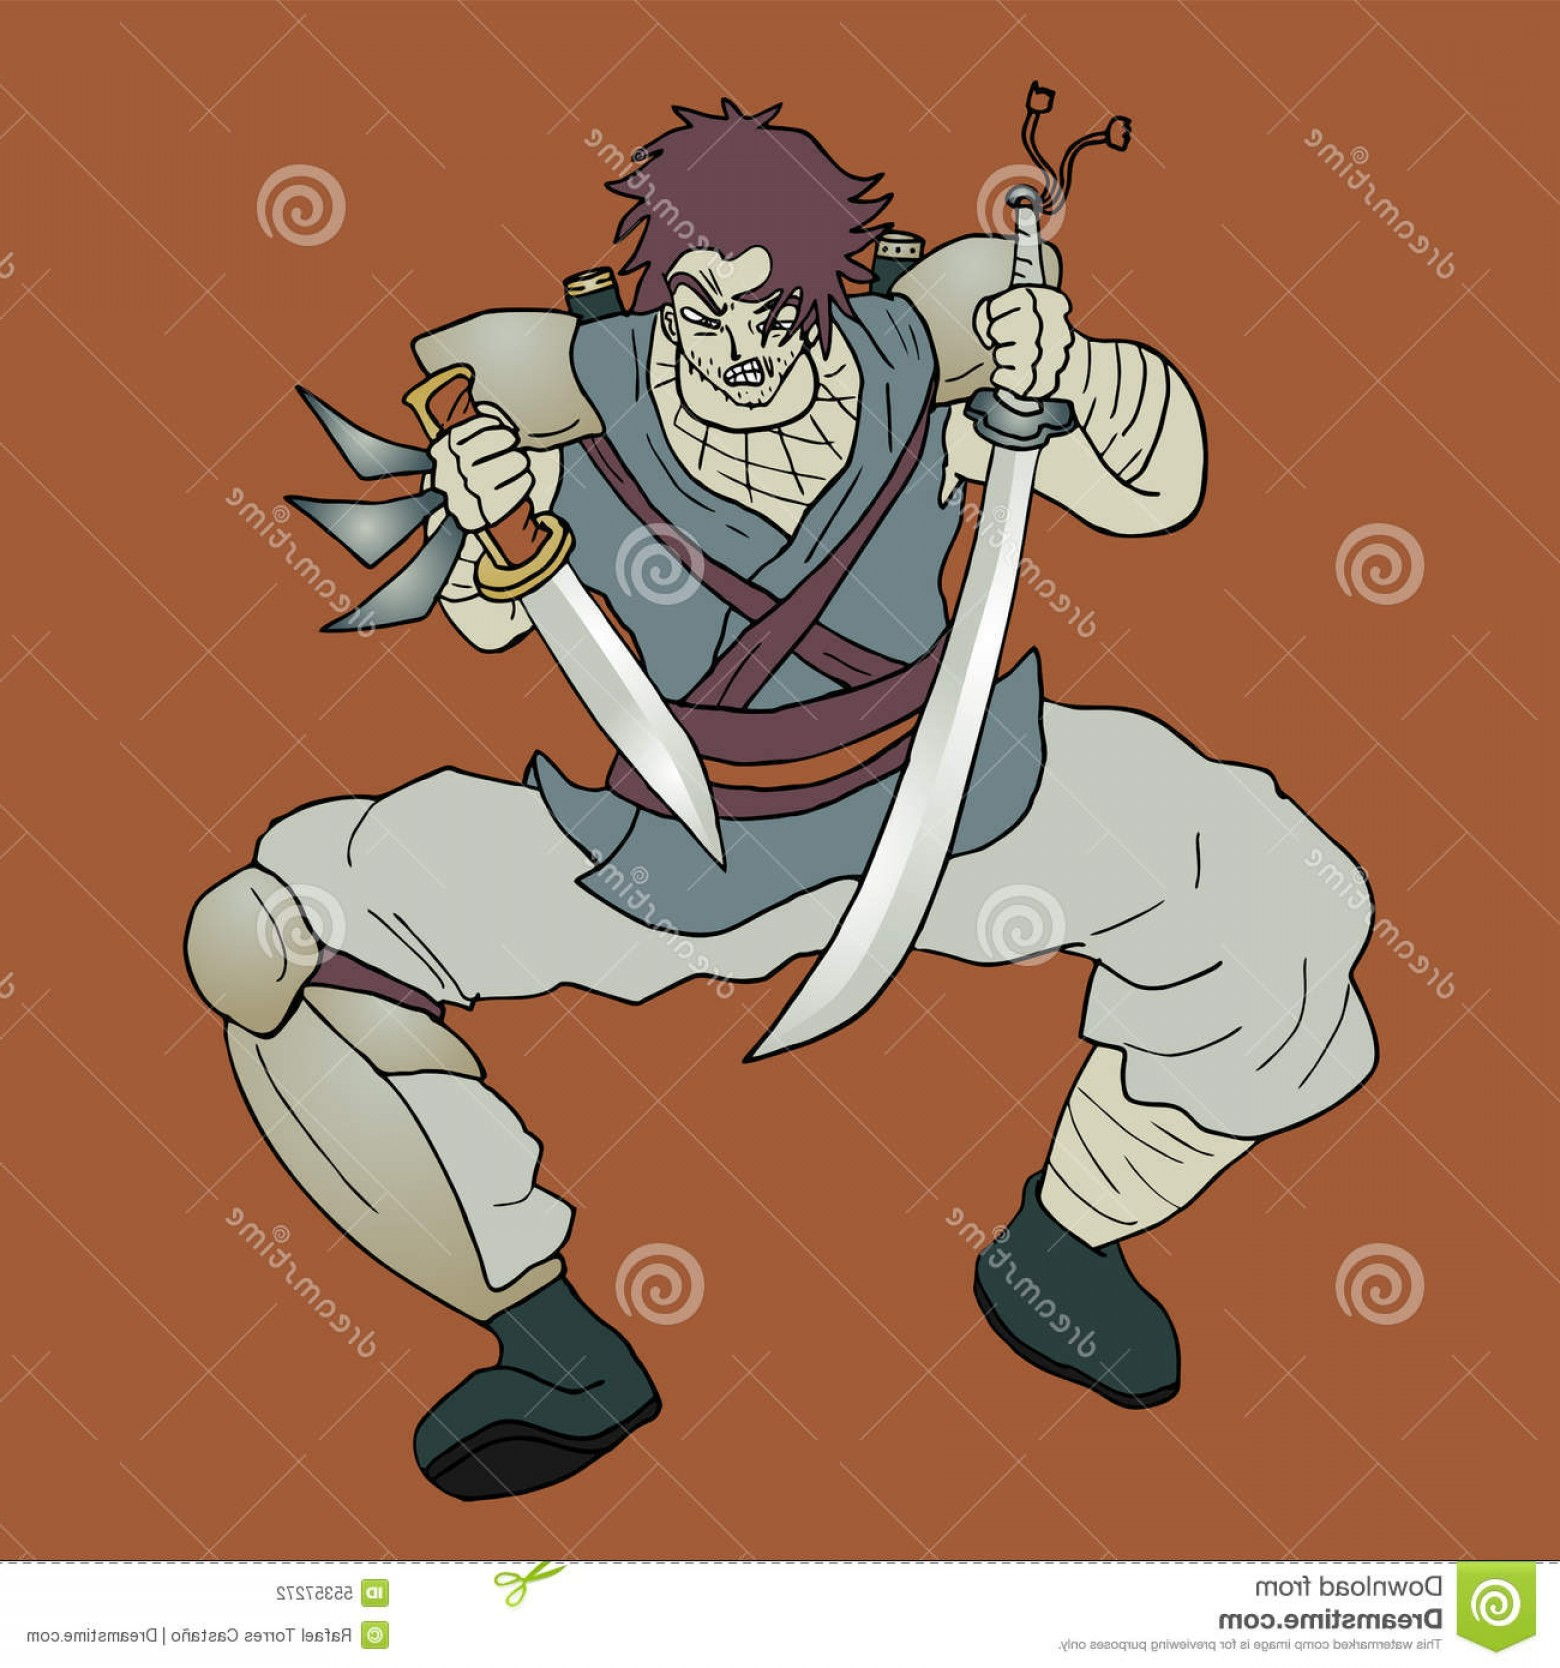 Windows Phone Vector Samurai: Stock Illustration Samurai Draw Design Danger Illustration Image